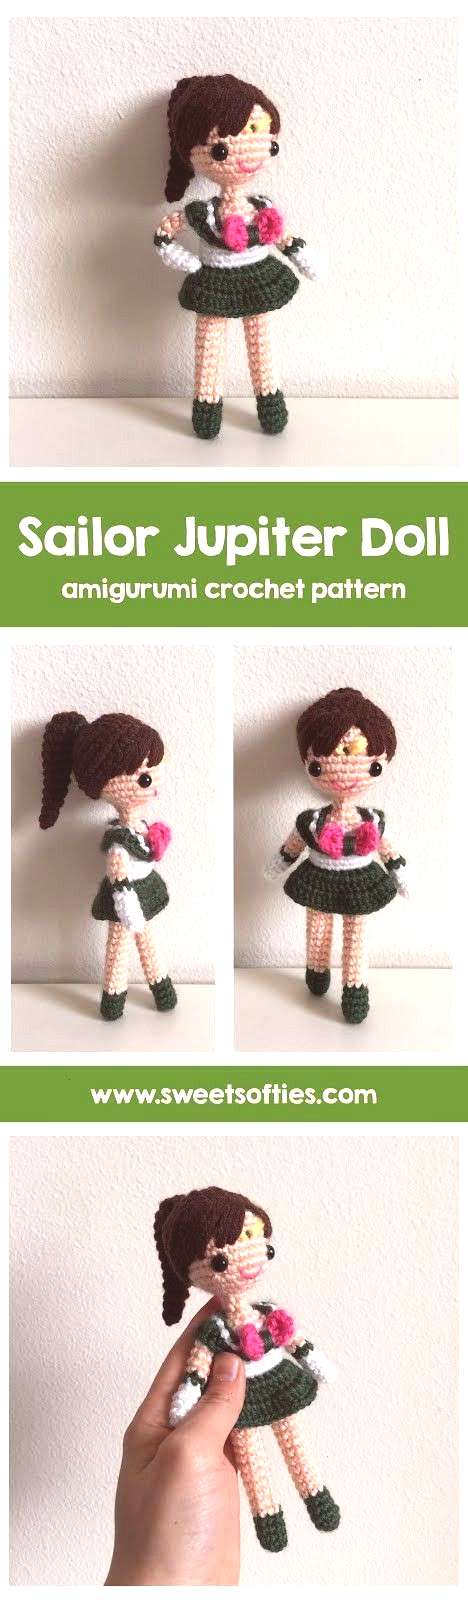 Softies  Amigurumi and Crochet Sailor Jupiter Amigurumi Crochet Doll Sweet Softies  Amigurumi and C